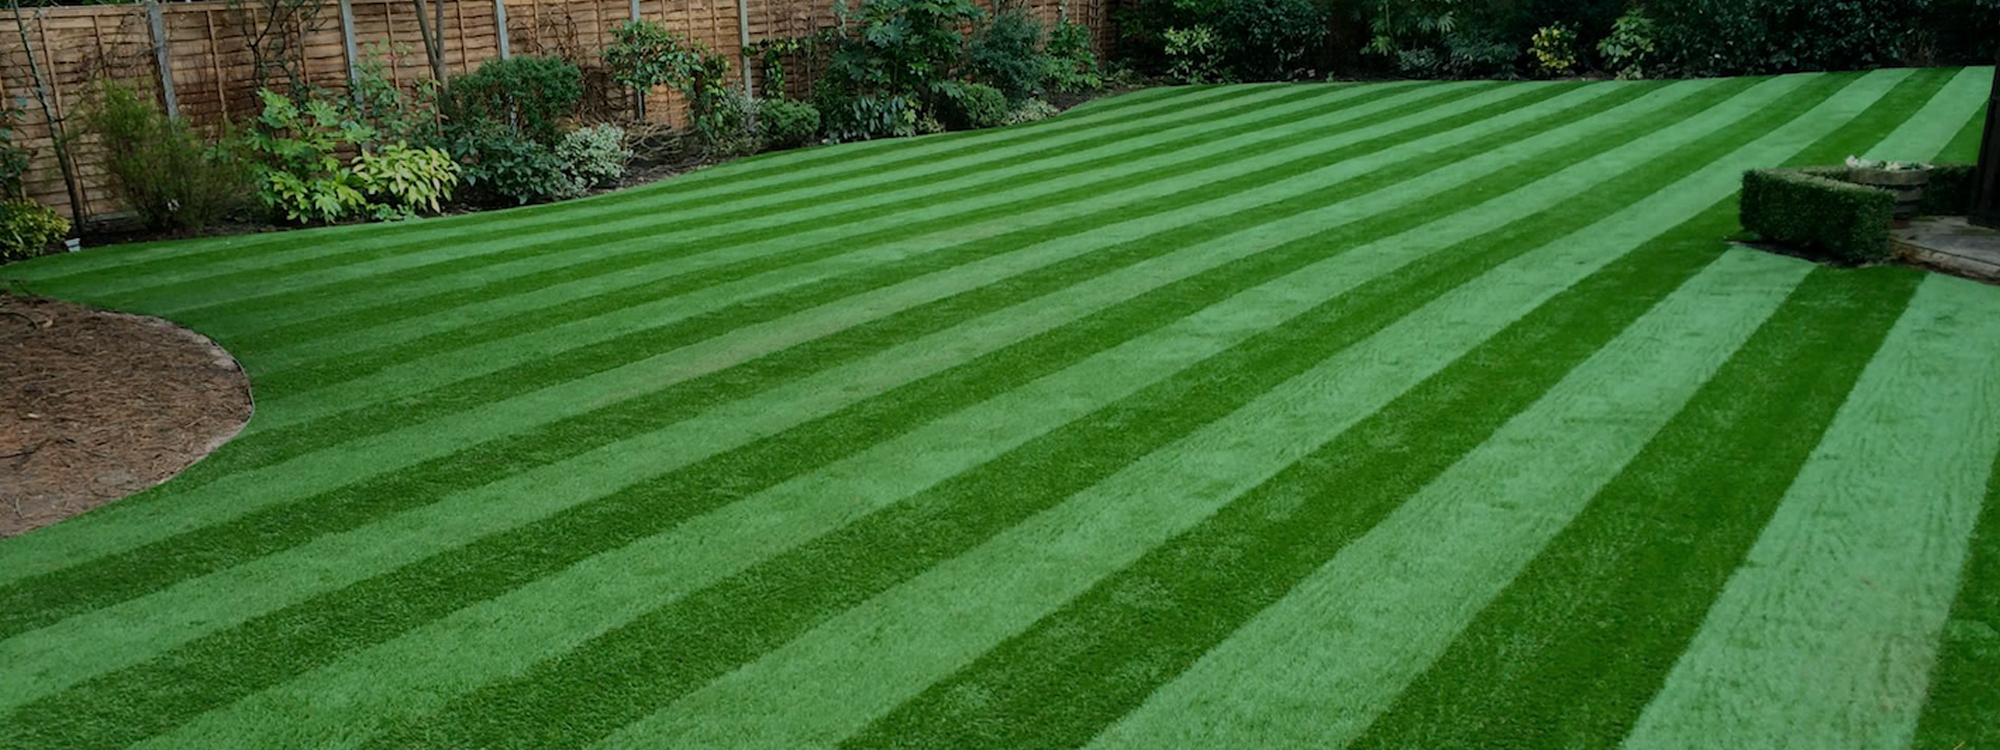 How to get the best price on Artificial Grass